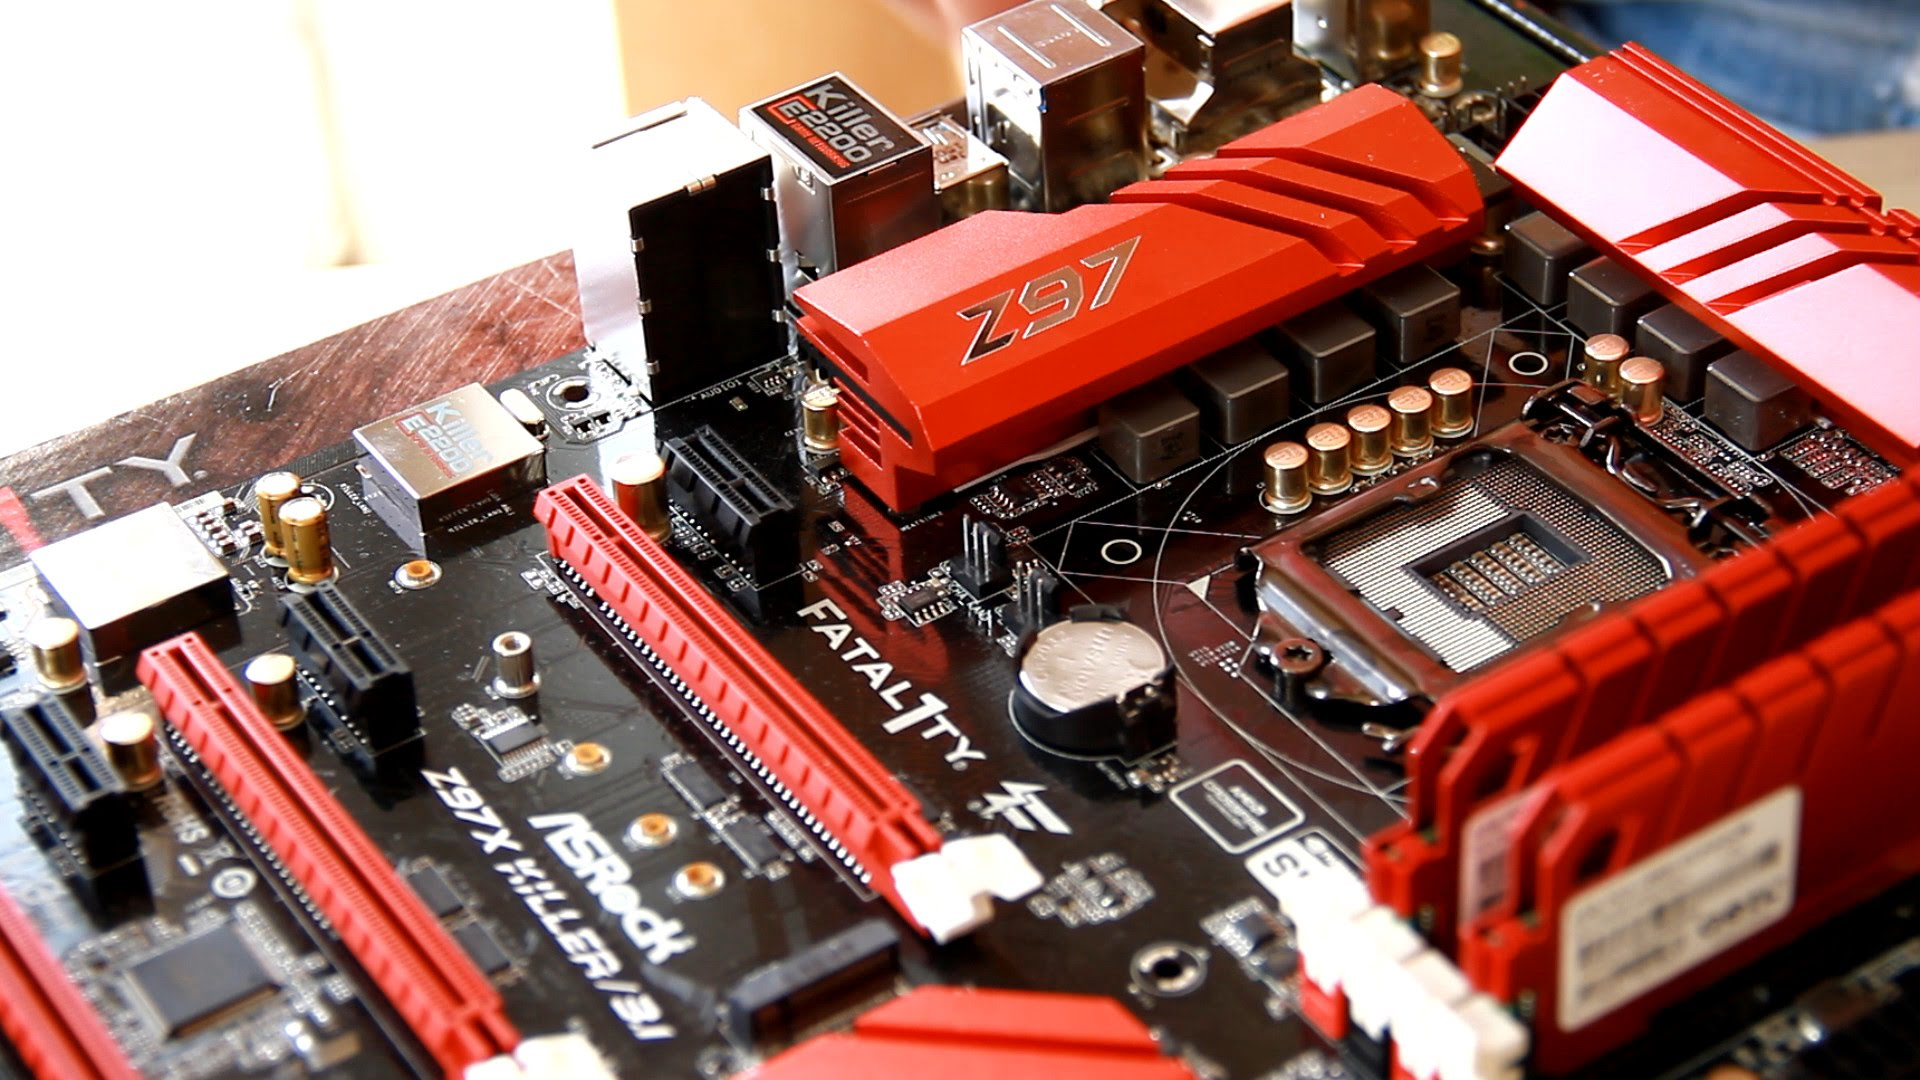 ASROCK FATAL1TY Z97 KILLER/3.1 ASMEDIA USB 3.1 WINDOWS VISTA 32-BIT